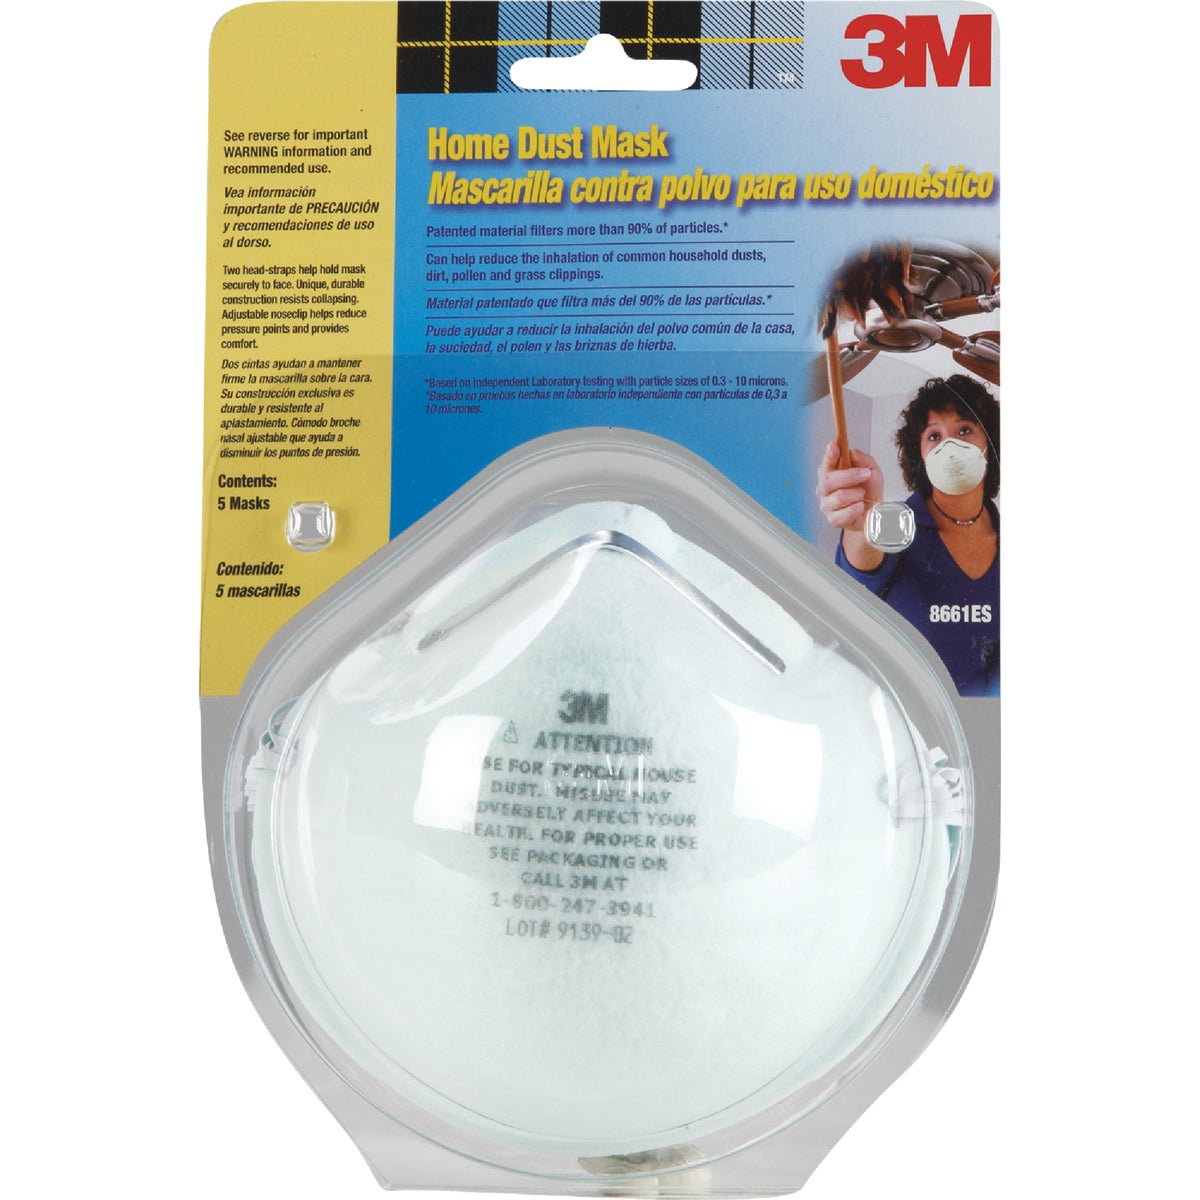 Home Dust Mask